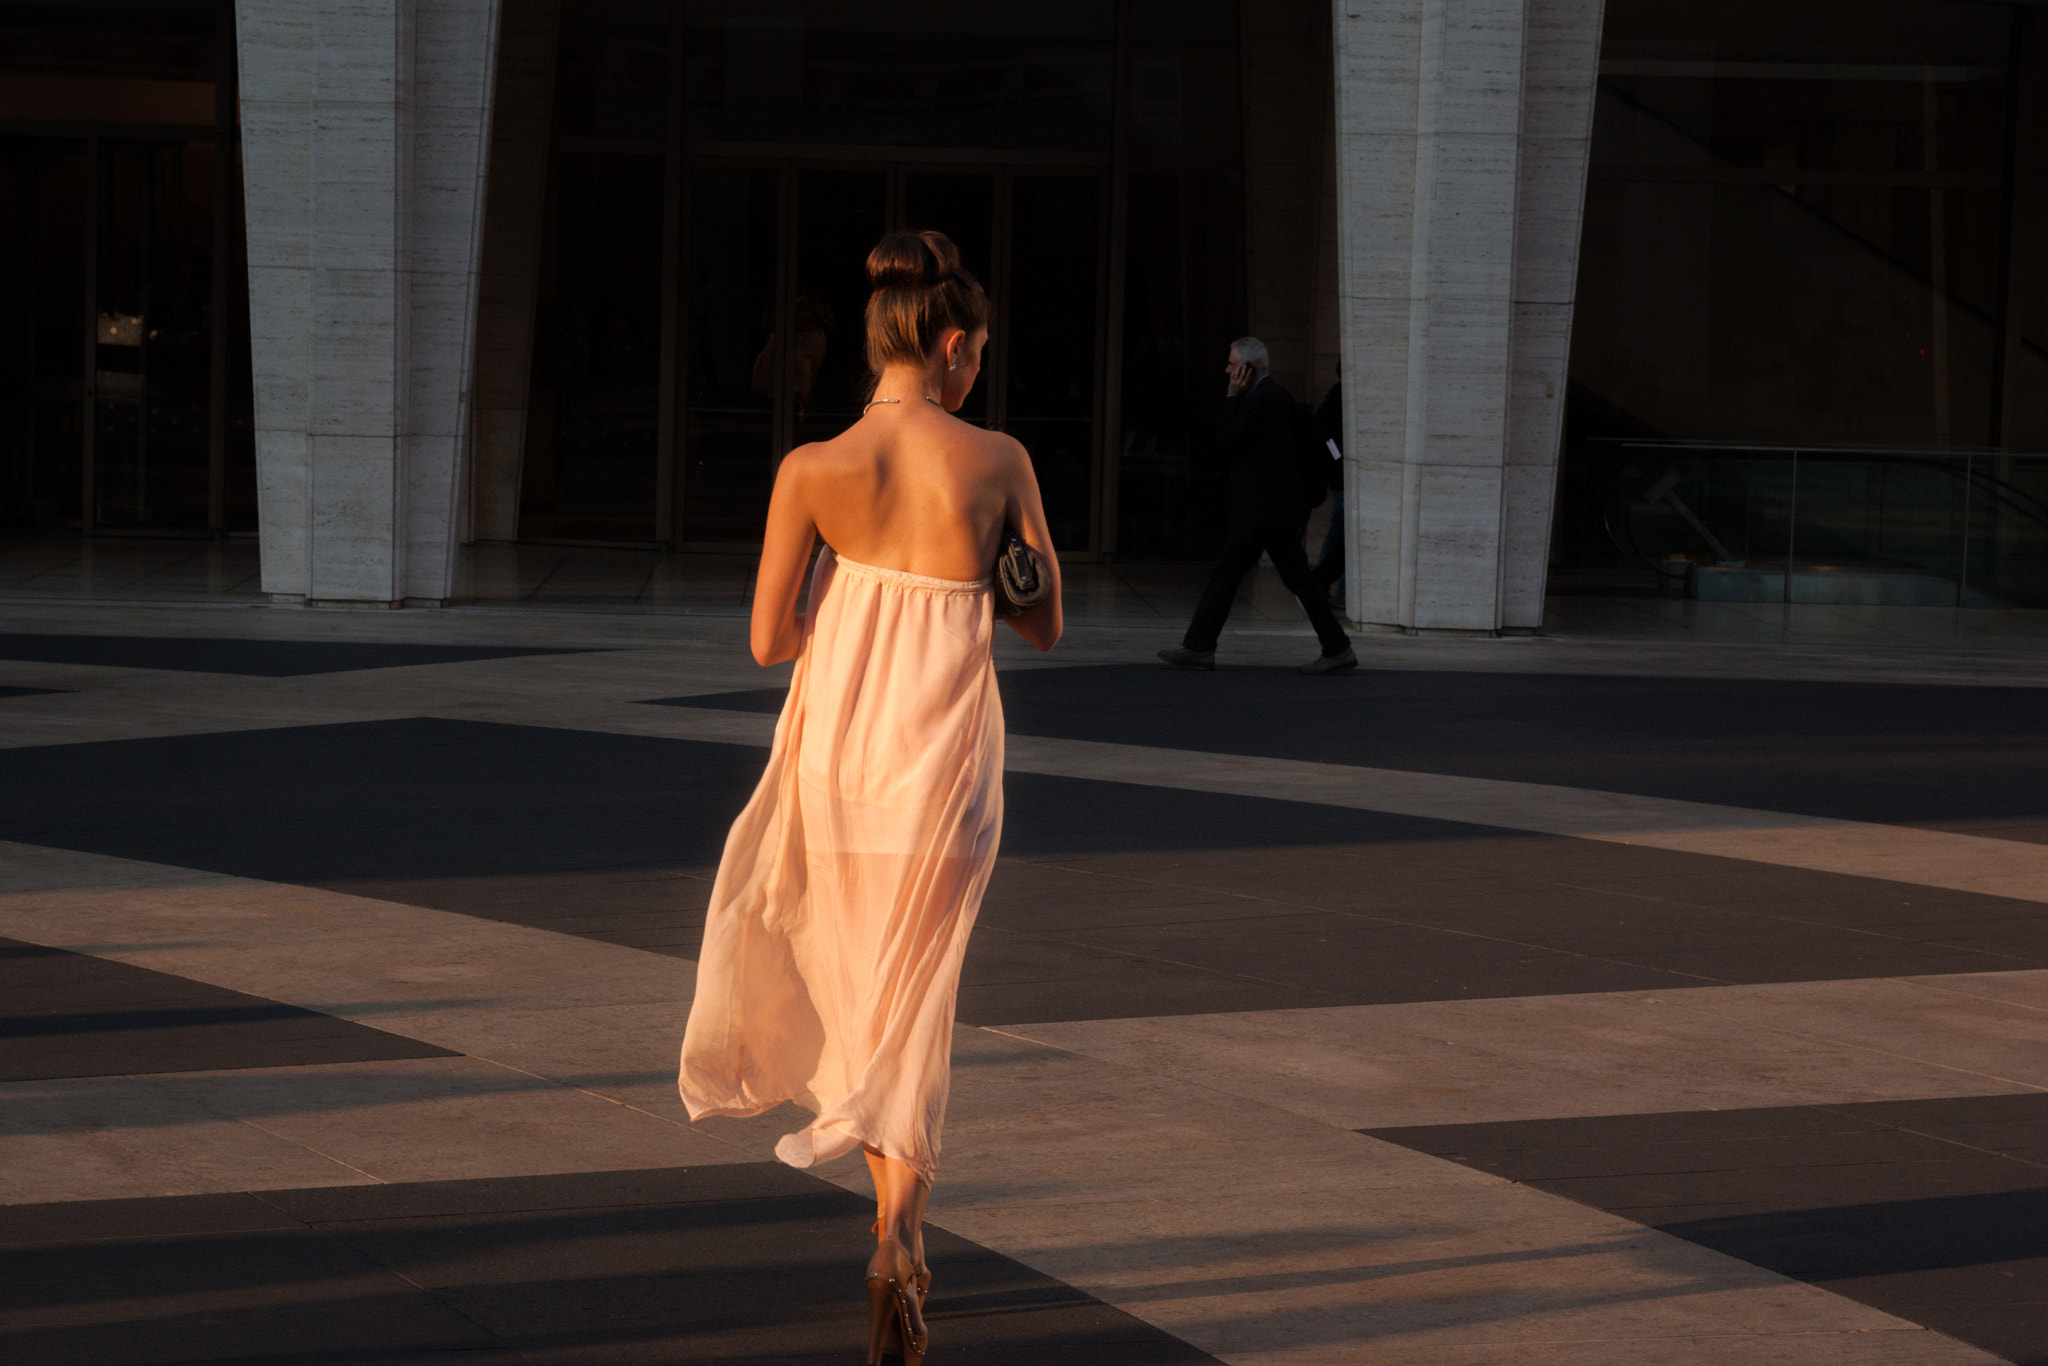 Photograph Woman, Early Evening by James Clear on 500px